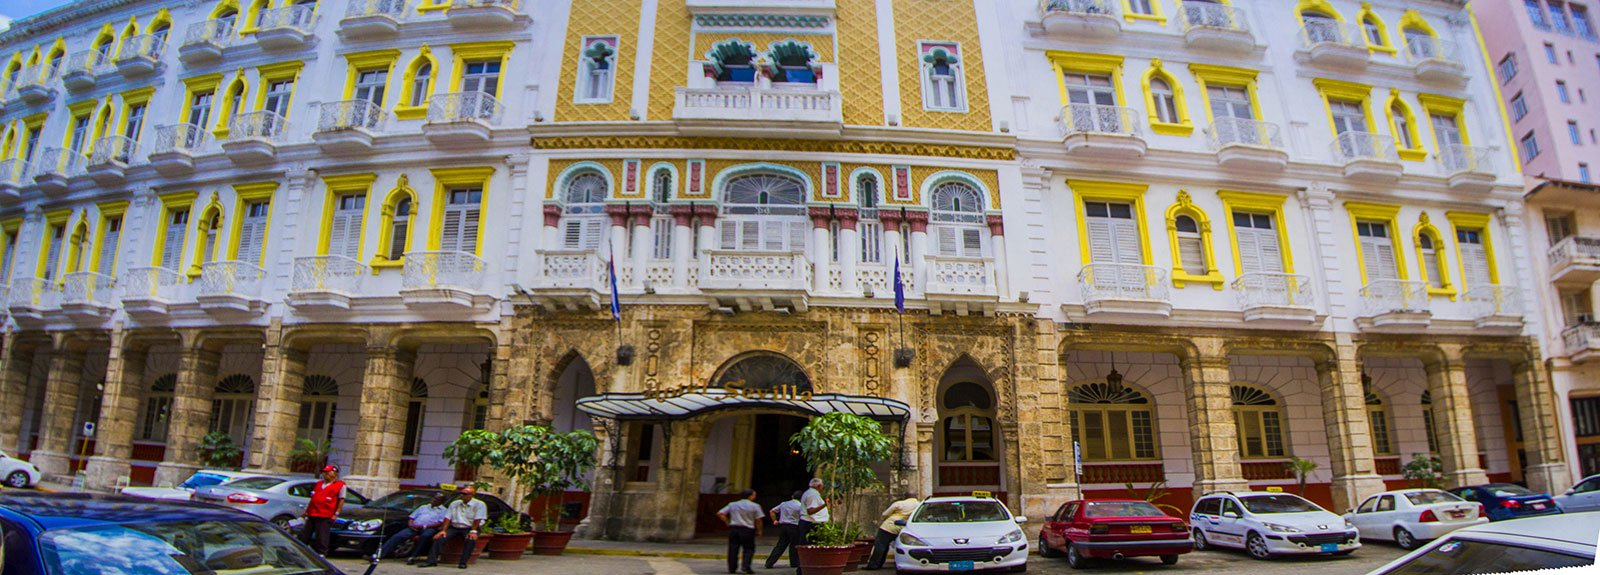 Sevilla hotel front in white and yellow